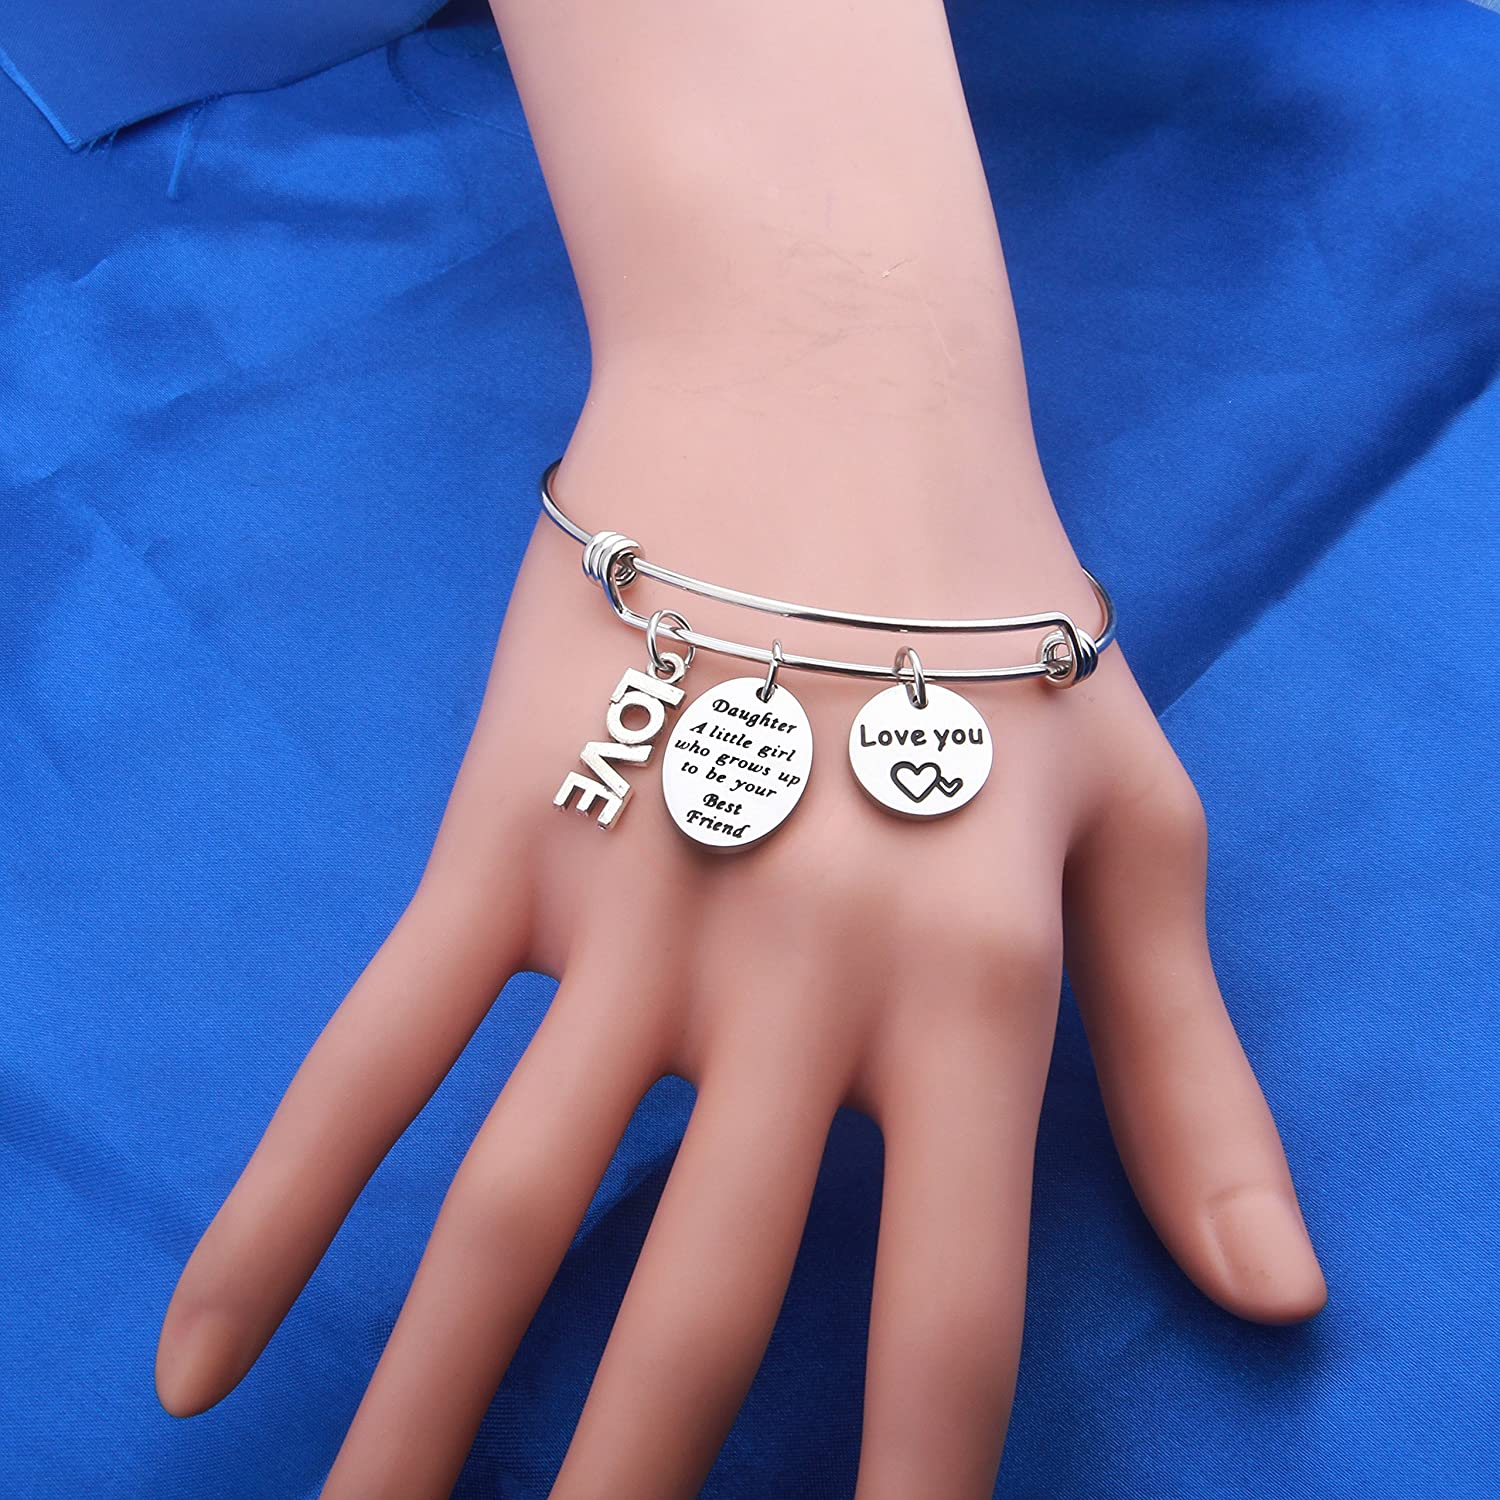 SEIRAA Mother Daughter Bracelet A Little Girl Who Grows Up to Be Your Best Friend Cuff Bangle Gifts for Teen Girl Wedding Day Gift